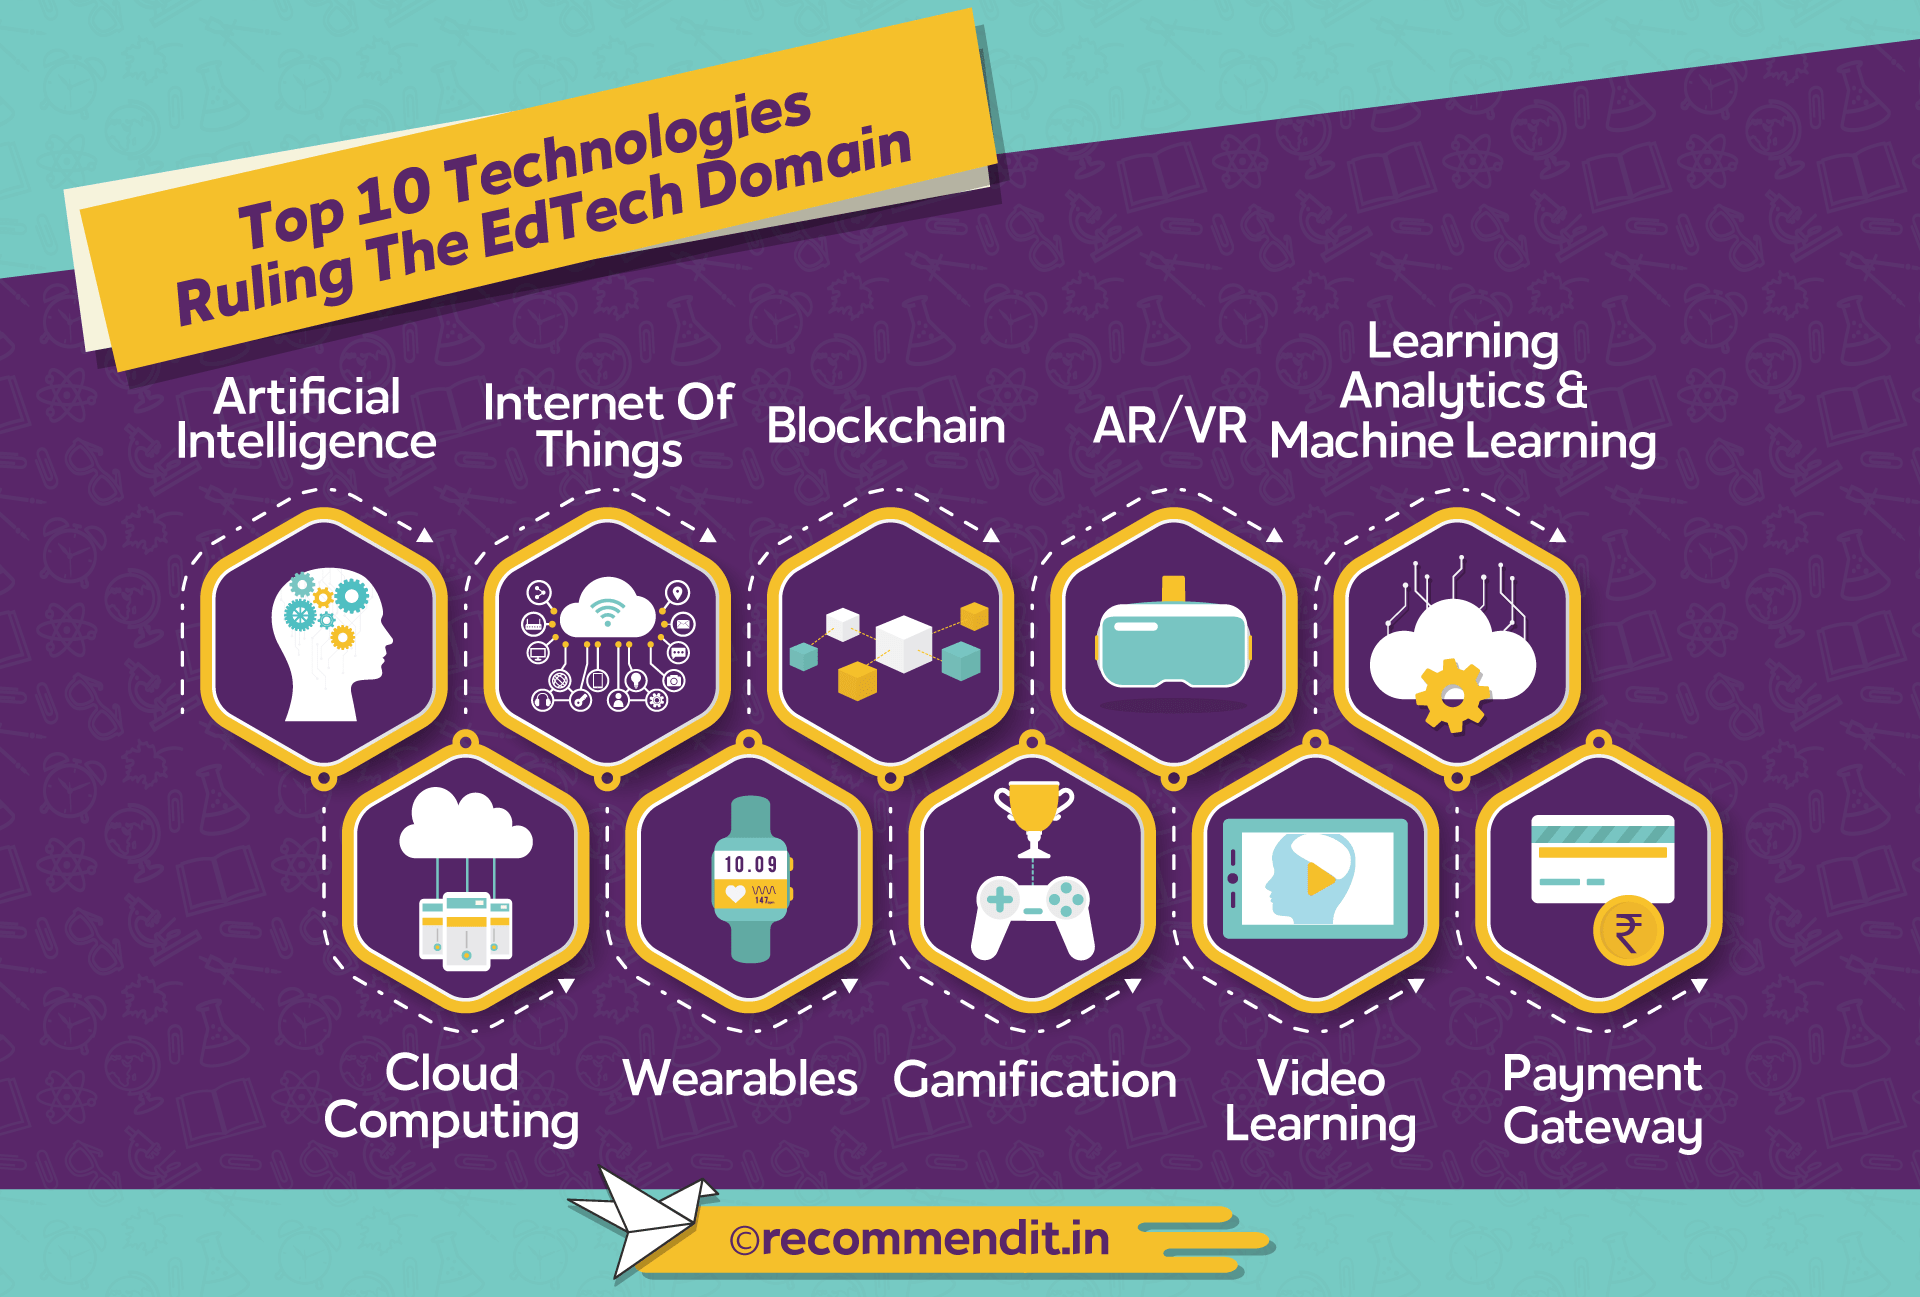 Top 10 technologies Ruling The EdTech Domain